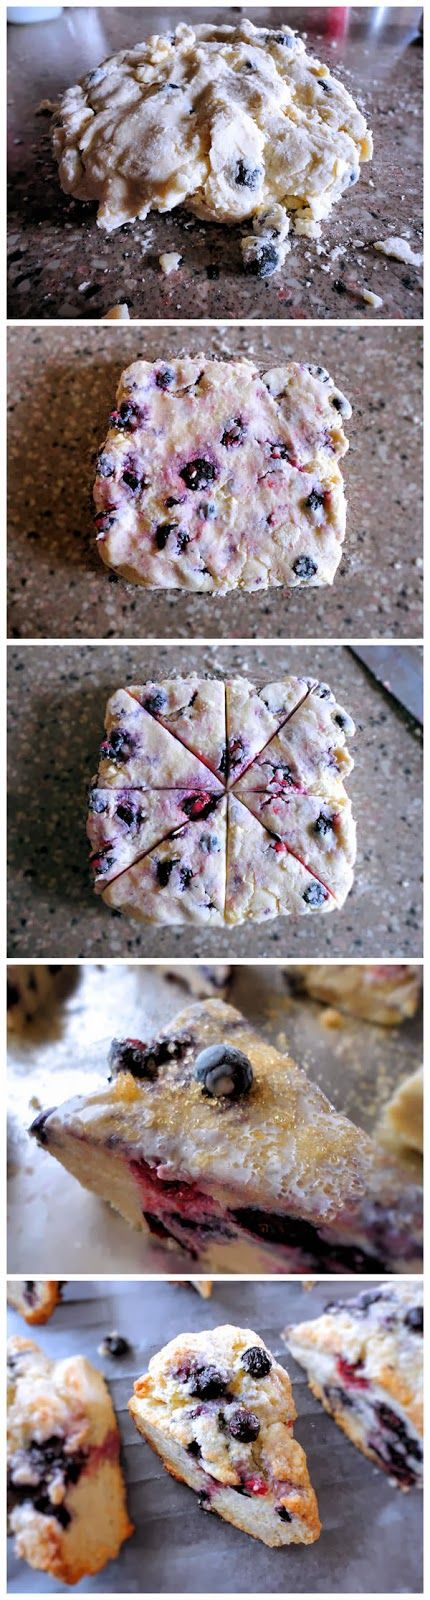 Blueberry Scones. The best scones recipe I have come across!